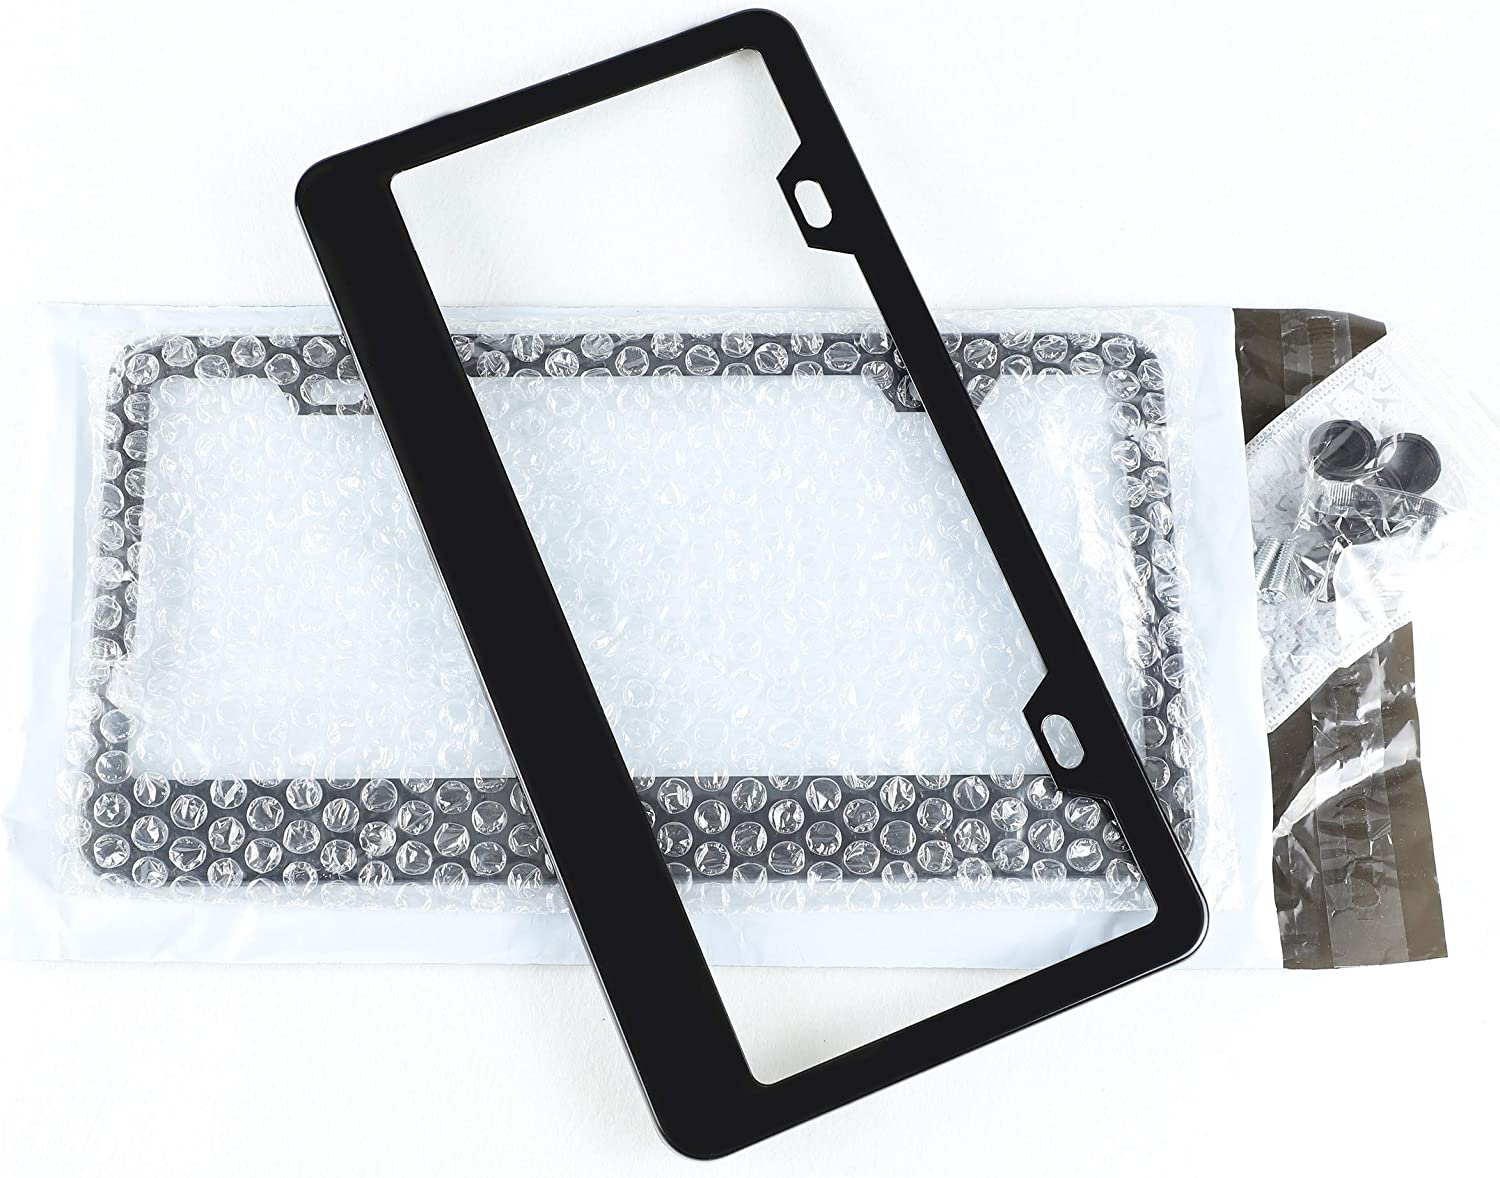 N//M OHIDO 2PCS Black License Plate Frame Powder Coating Heavy Duty Pure Black Plate Cover Metal Superior Plate Frame Holder Stable Frame Bracket for US//CAN 4 Black Caps+8 Alloy Screws+1 Screwdriver